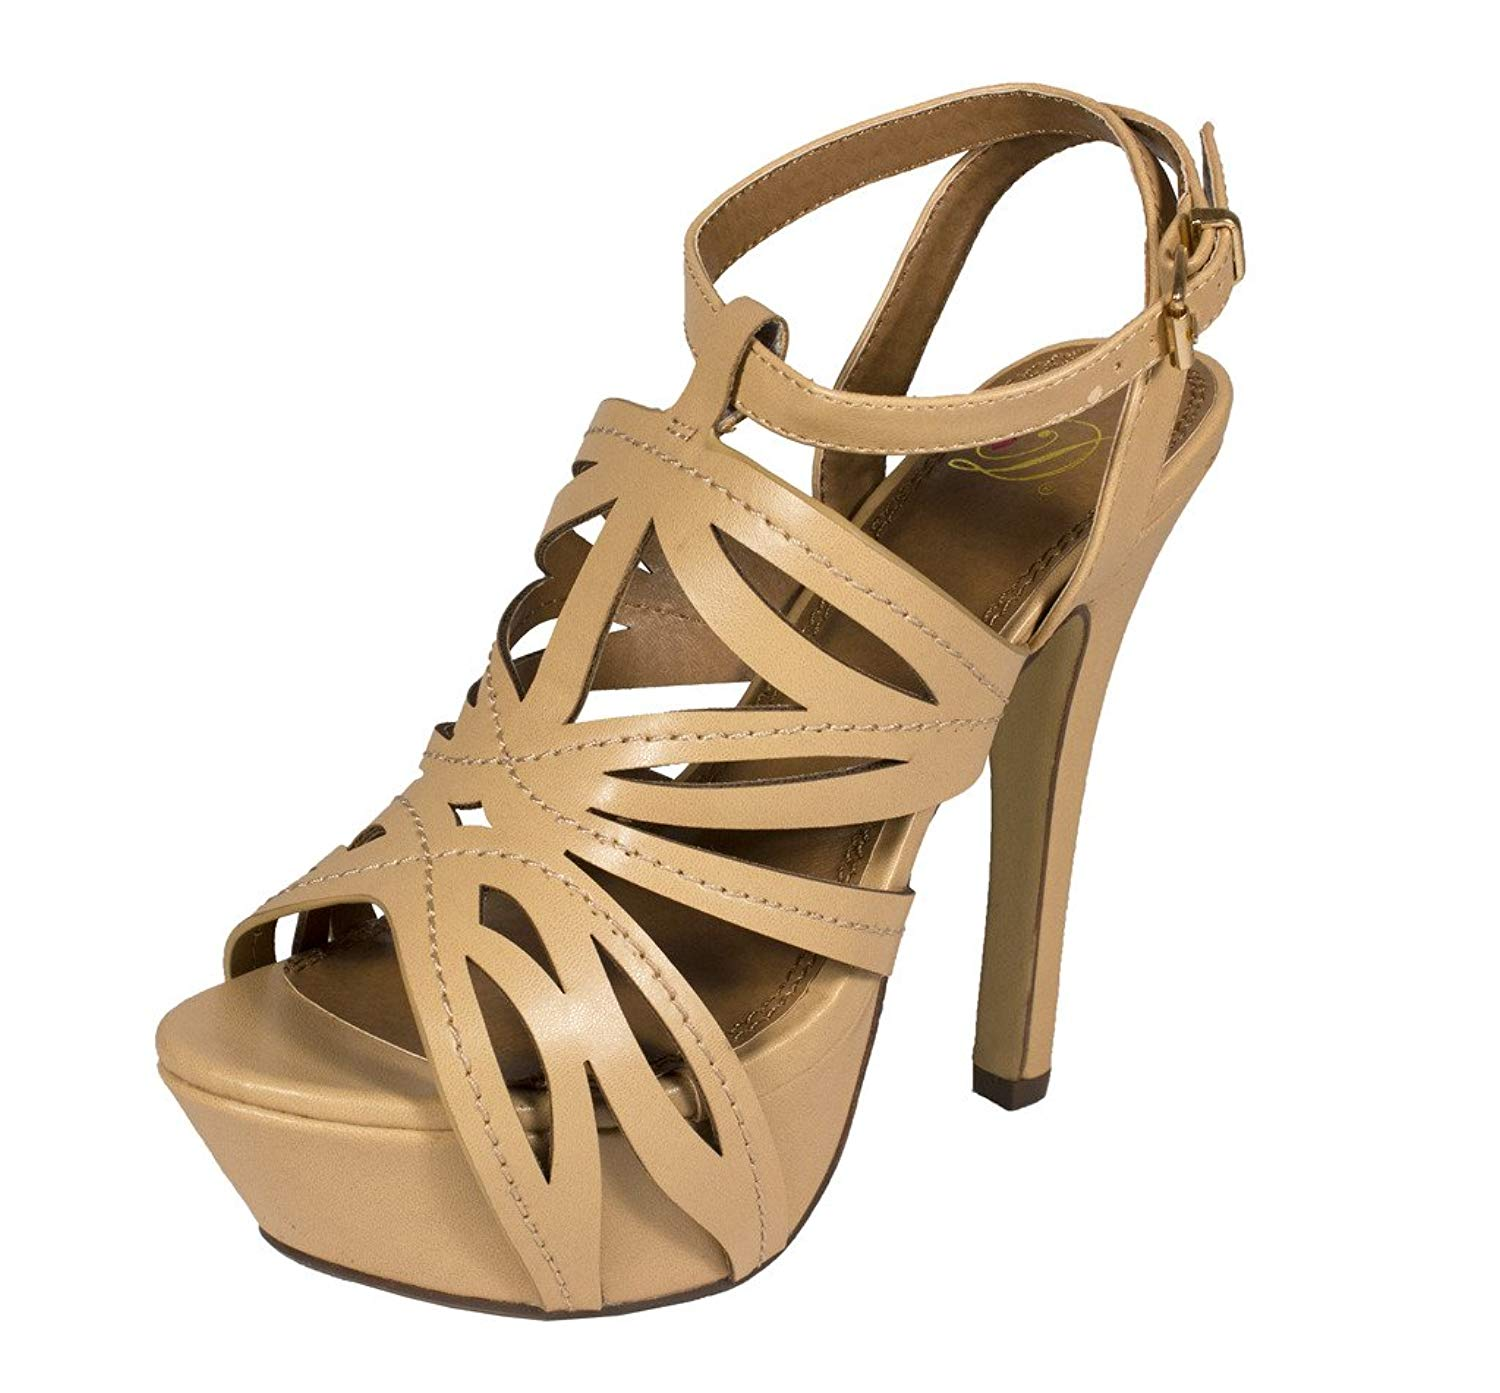 Delicious Women's Rustic Peep Toe Cut Out Ankle Strap Platform High Heel Sandal in Natural Leatherette